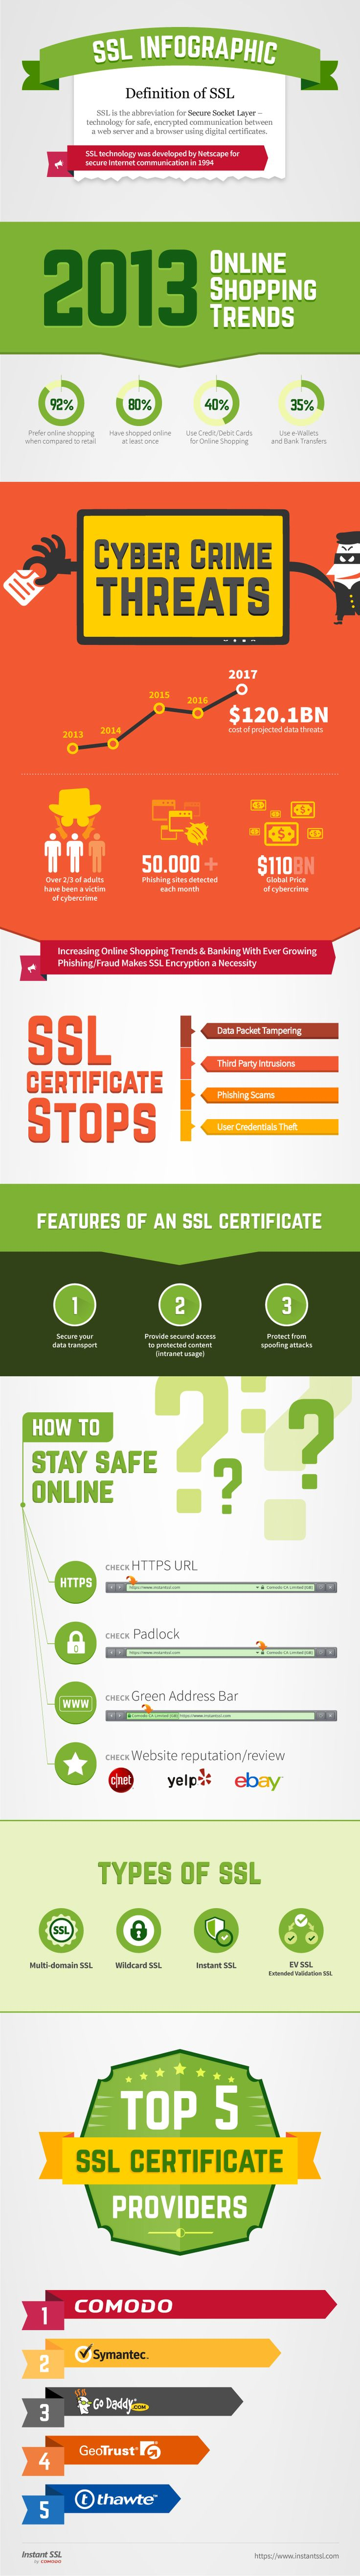 What is SSL Certificate?  SSL Certificates ( https://www.instantssl.com/ssl-certificate.html ) provide secure, encrypted communications between a website and an internet browser when it activates the padlock and the https protocol.    SSL (https://www.instantssl.com/ssl.html)  is the abbreviation for secure socket layer - technology for safe, encrypted communication between a web server and a browser using digital certificates.